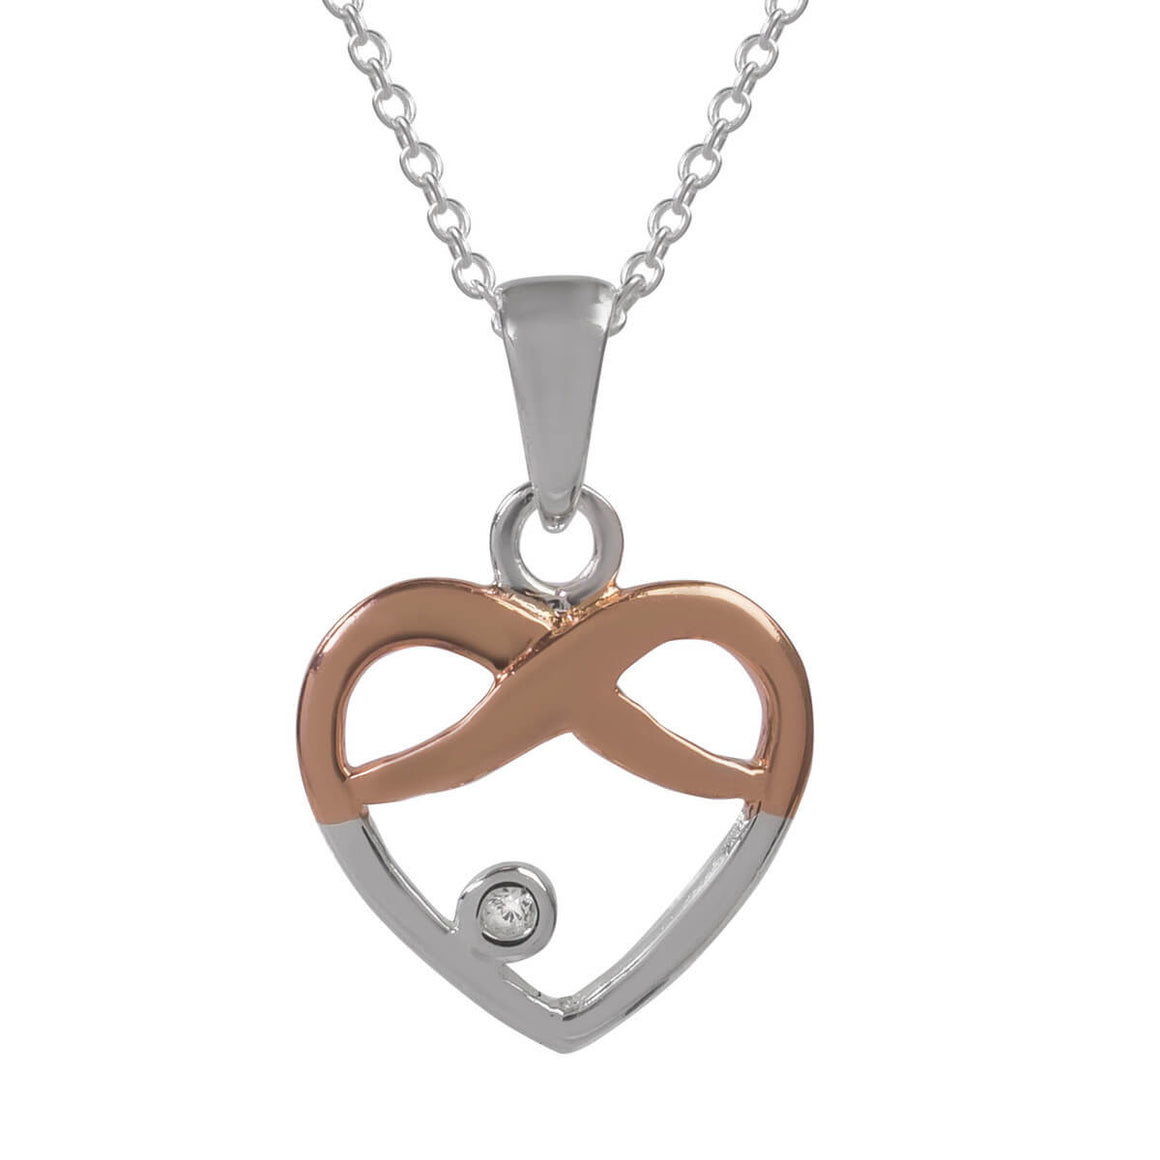 Sophie Oliver Valencia Infinity Love Heart Necklace